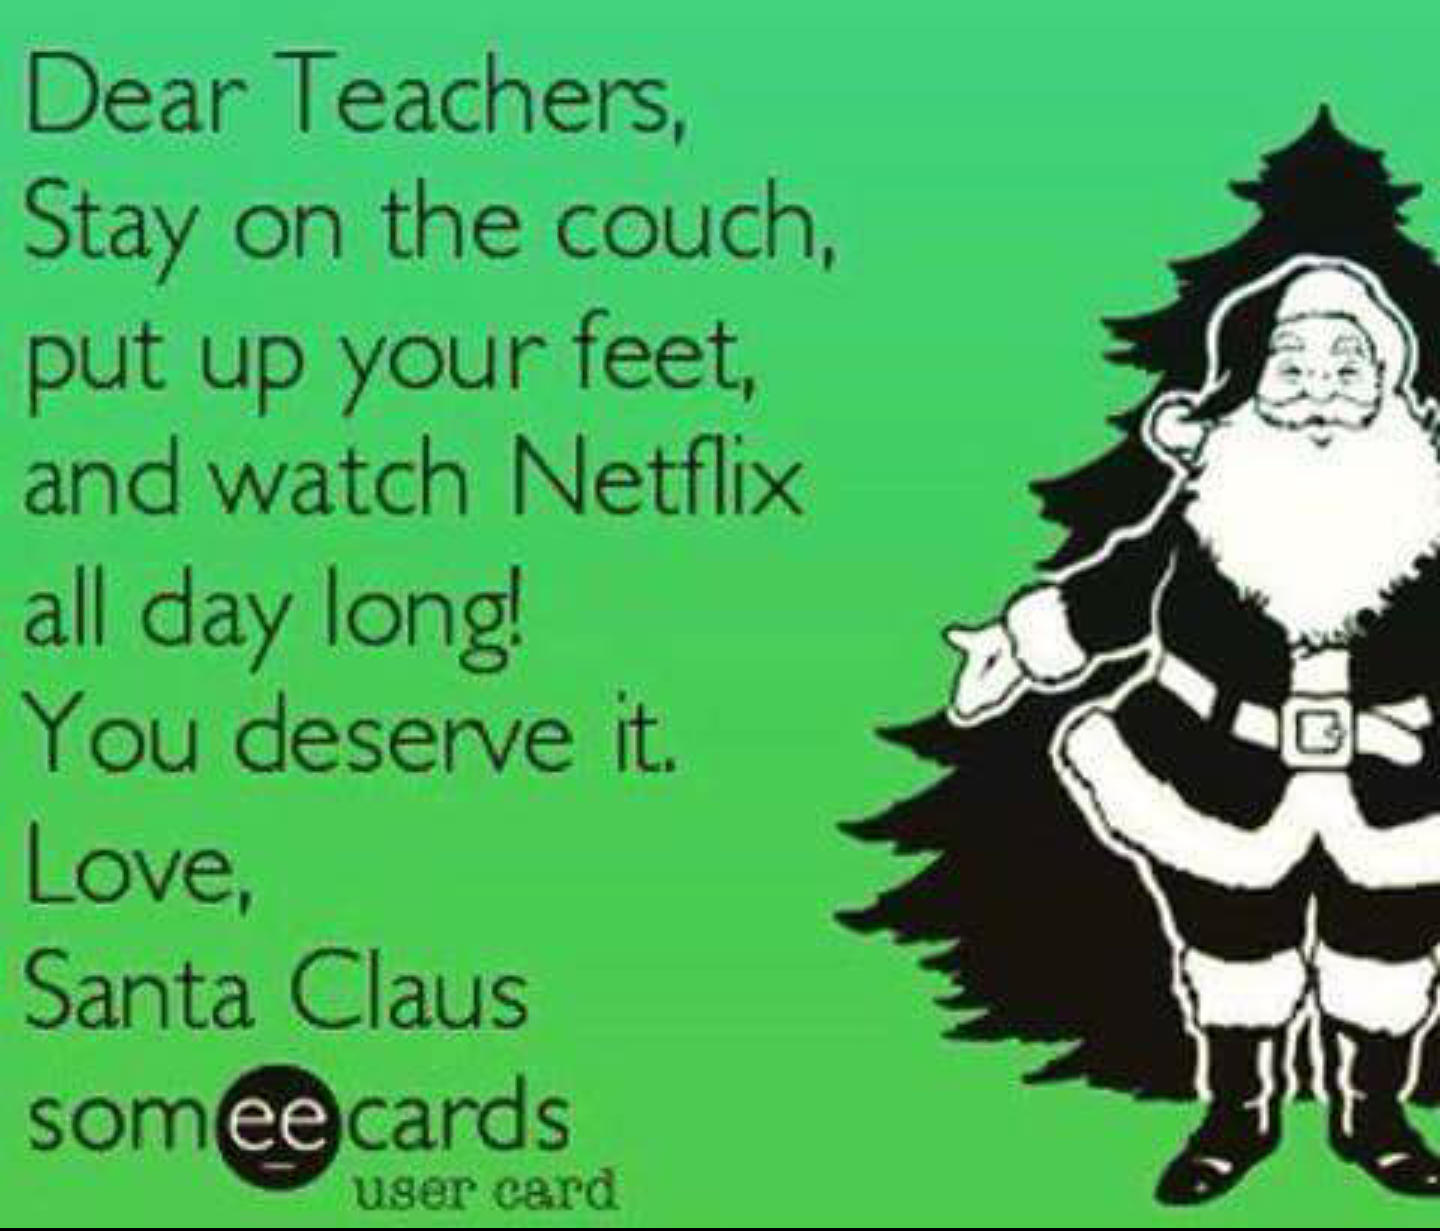 Pin By Laura Mirabel On Teacher Quotes Memes Teacher Humor Teacher Jokes Teacher Memes